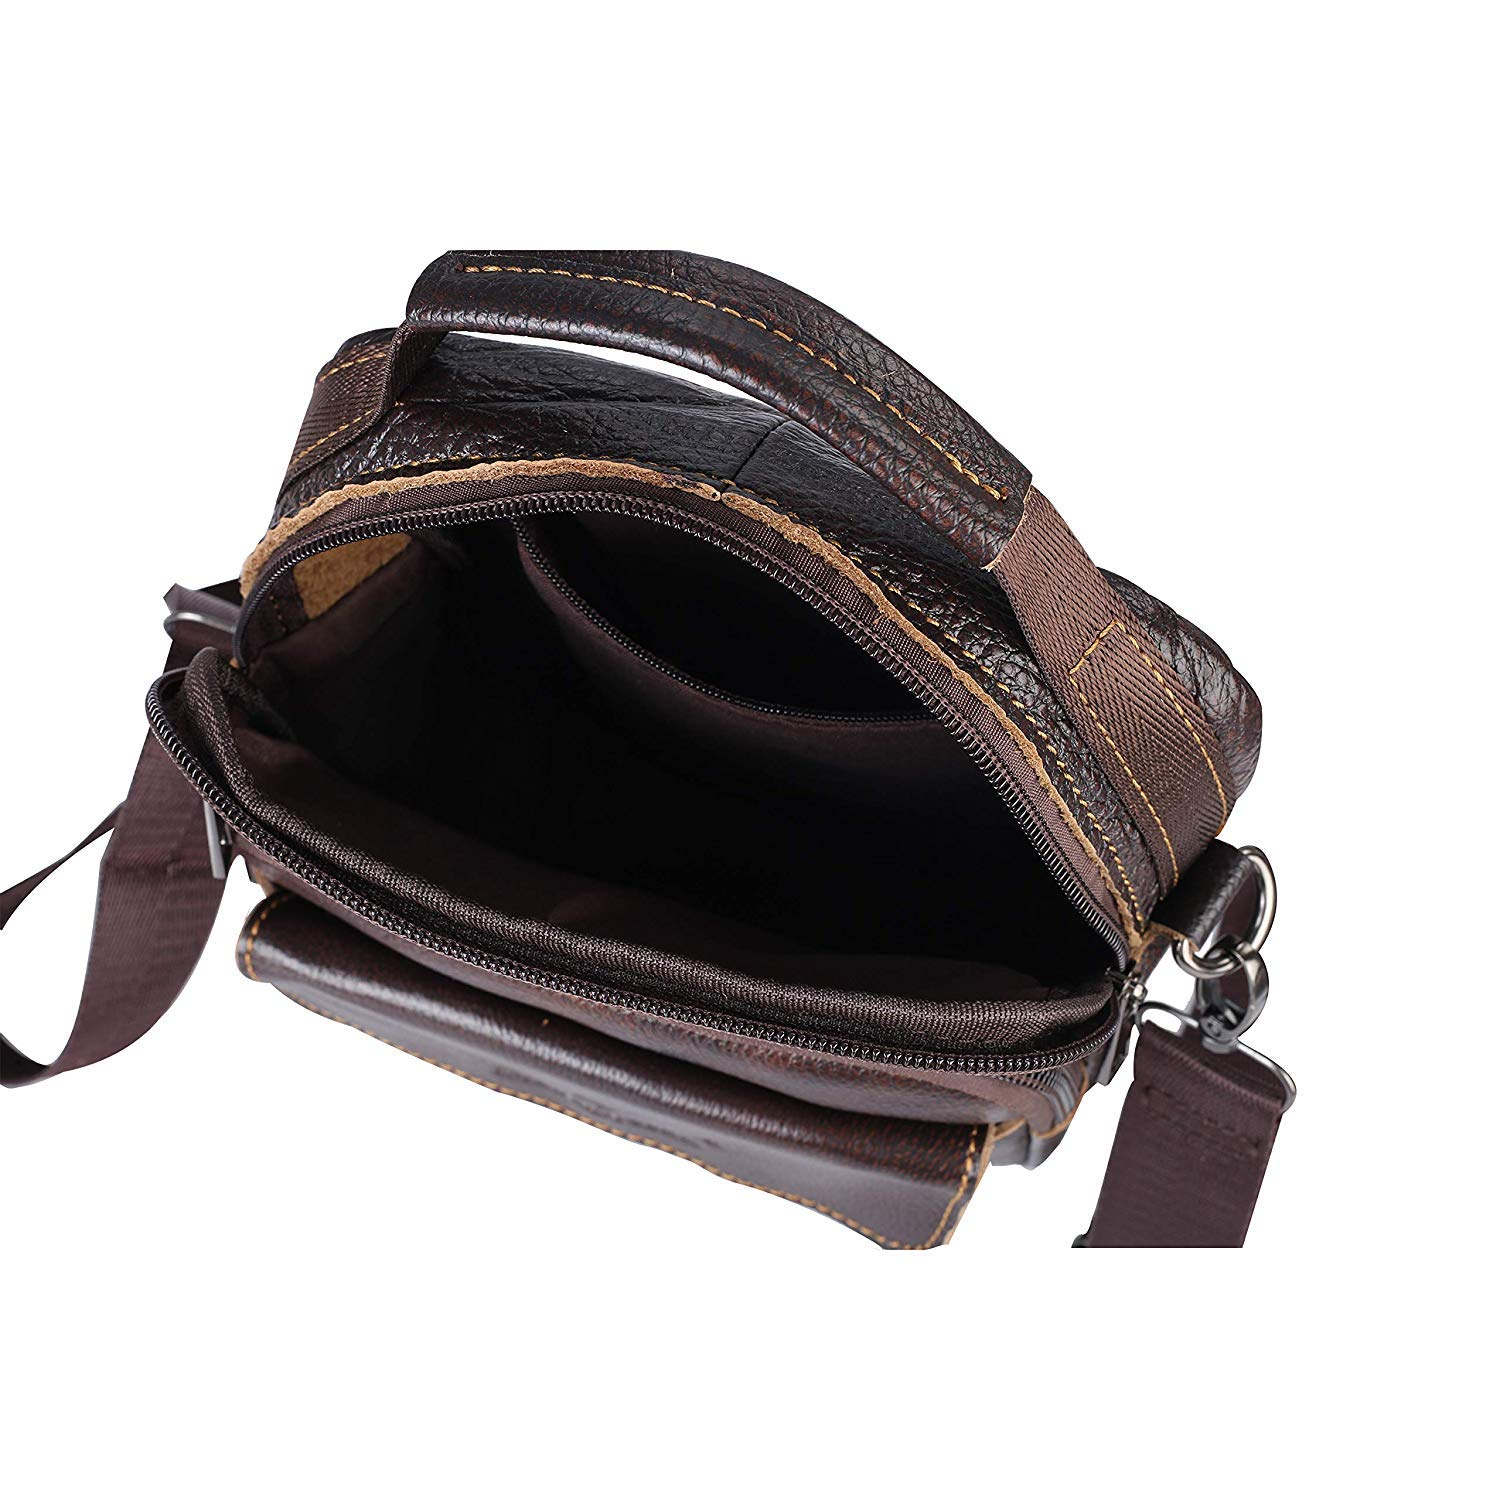 Men Bag Small Messenger Bag Water Resistant Men Shoulder Crossbody Bags and Purses Genuine Leather Pocket for Men and Women Daily Business Travel Work